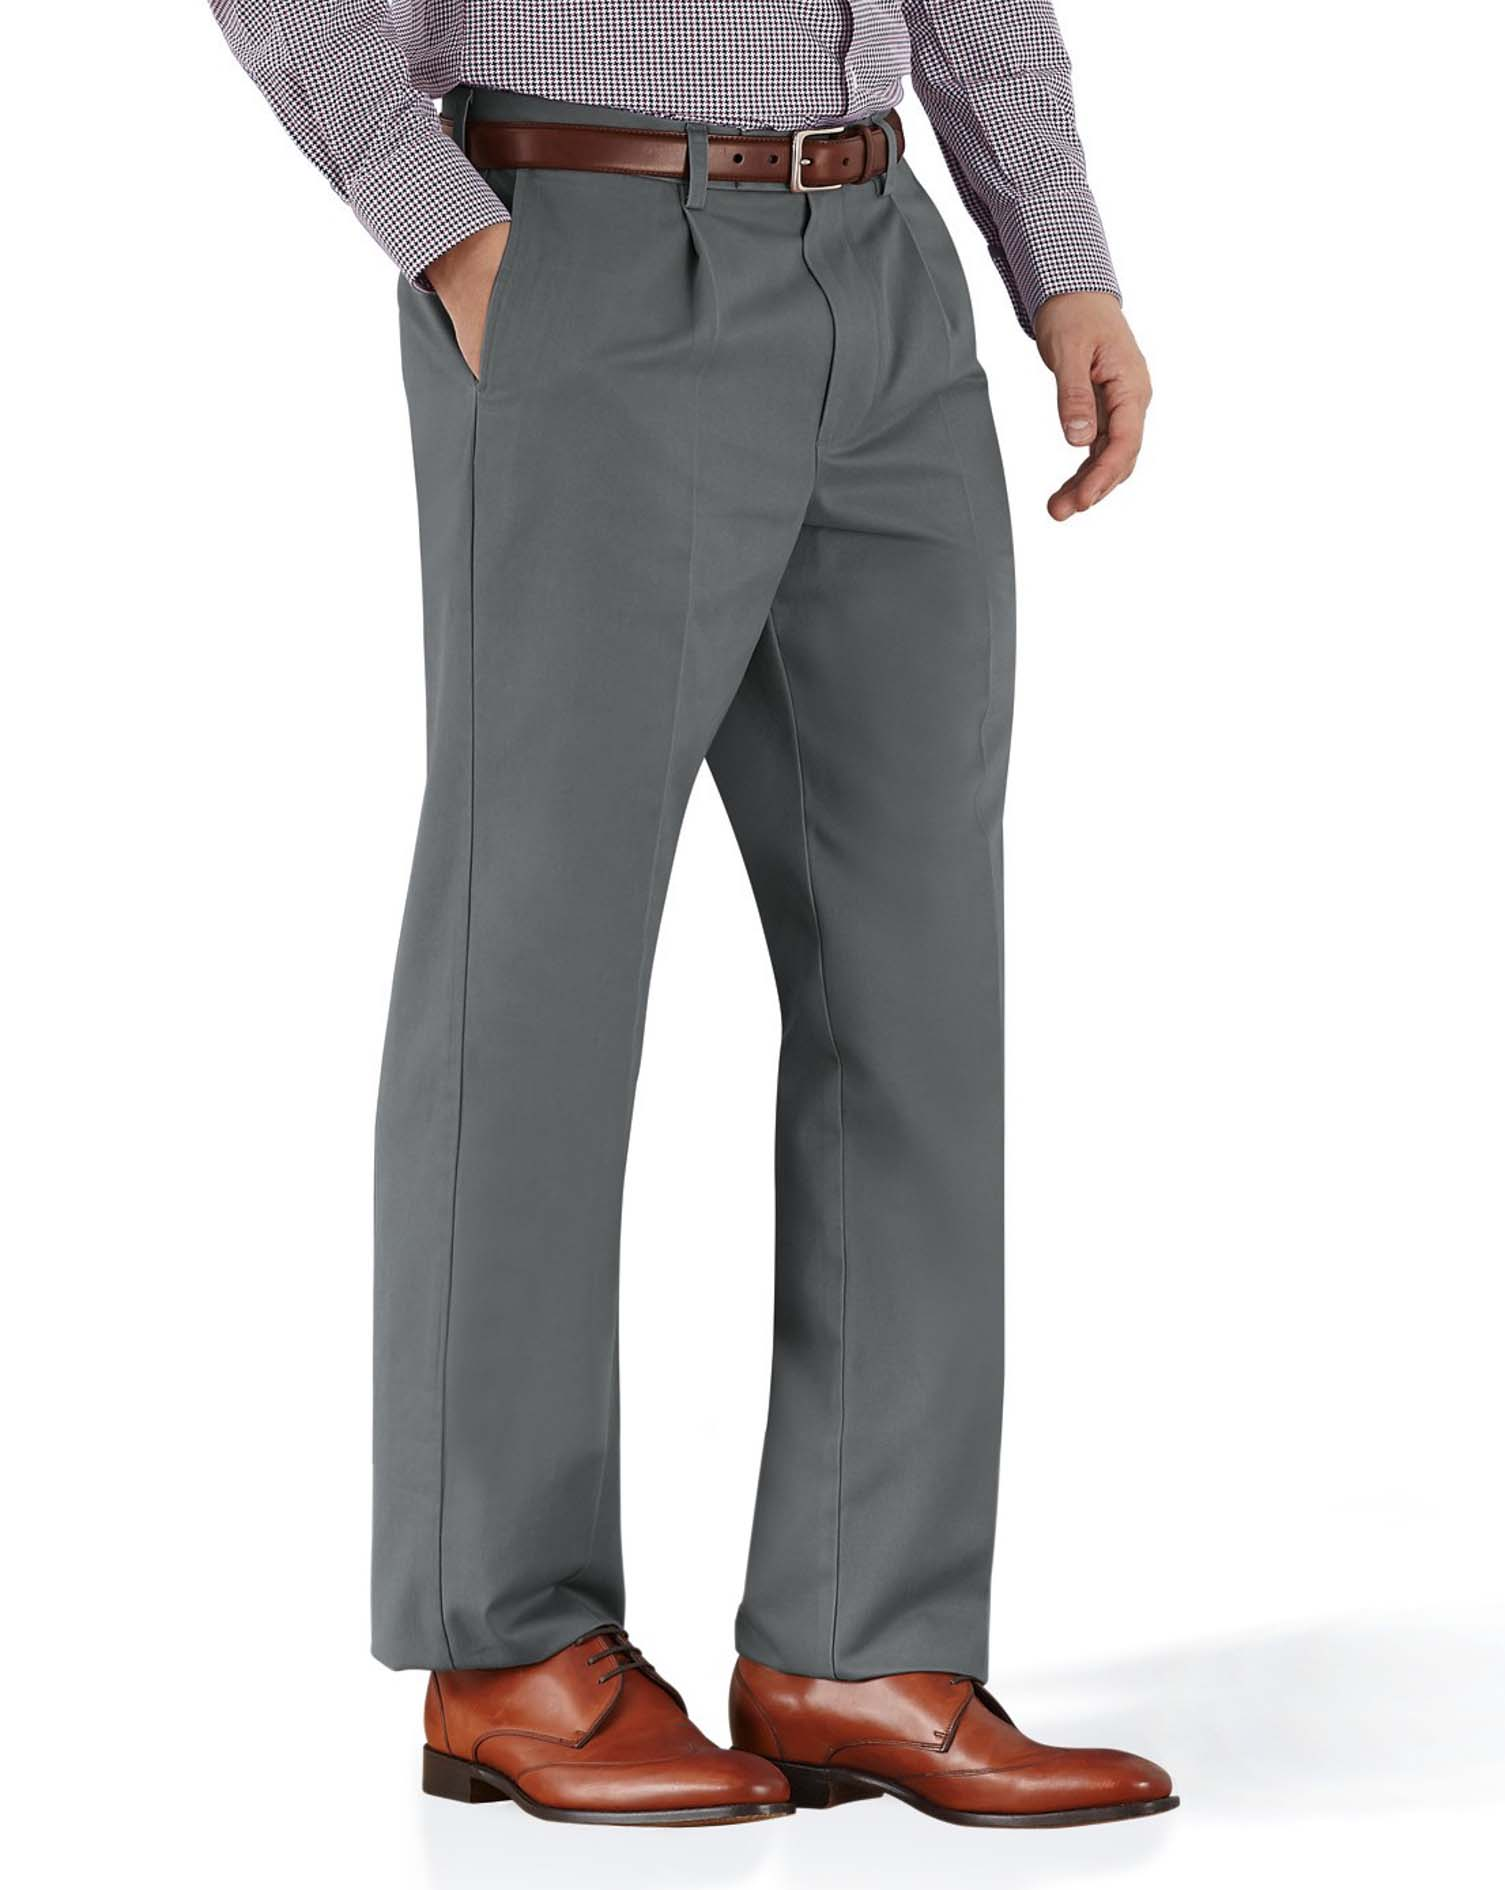 Grey Classic Fit Single Pleat Non-Iron Cotton Chino Trousers Size W44 L38 by Charles Tyrwhitt